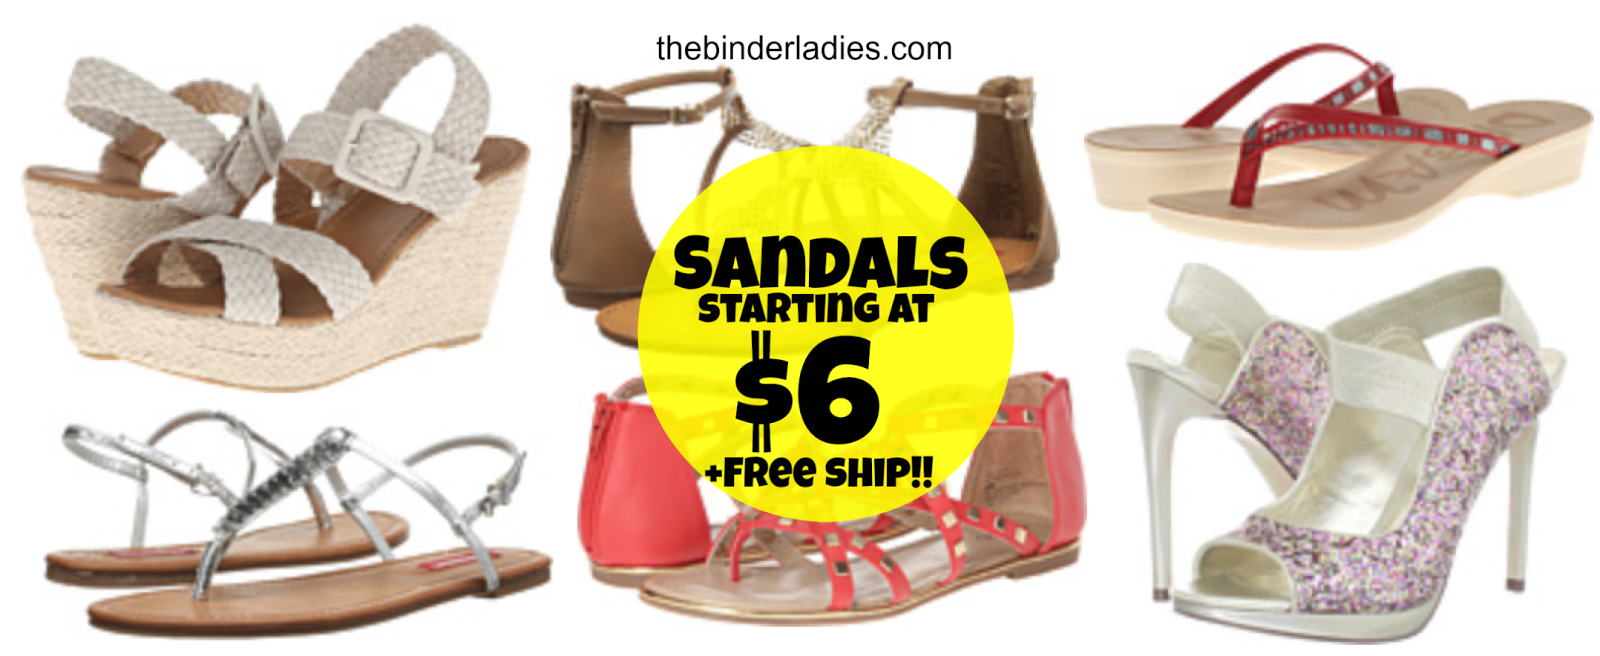 http://www.thebinderladies.com/2014/10/6pm-womens-sandals-starting-just-6-free.html#.VDV50Evdtbw